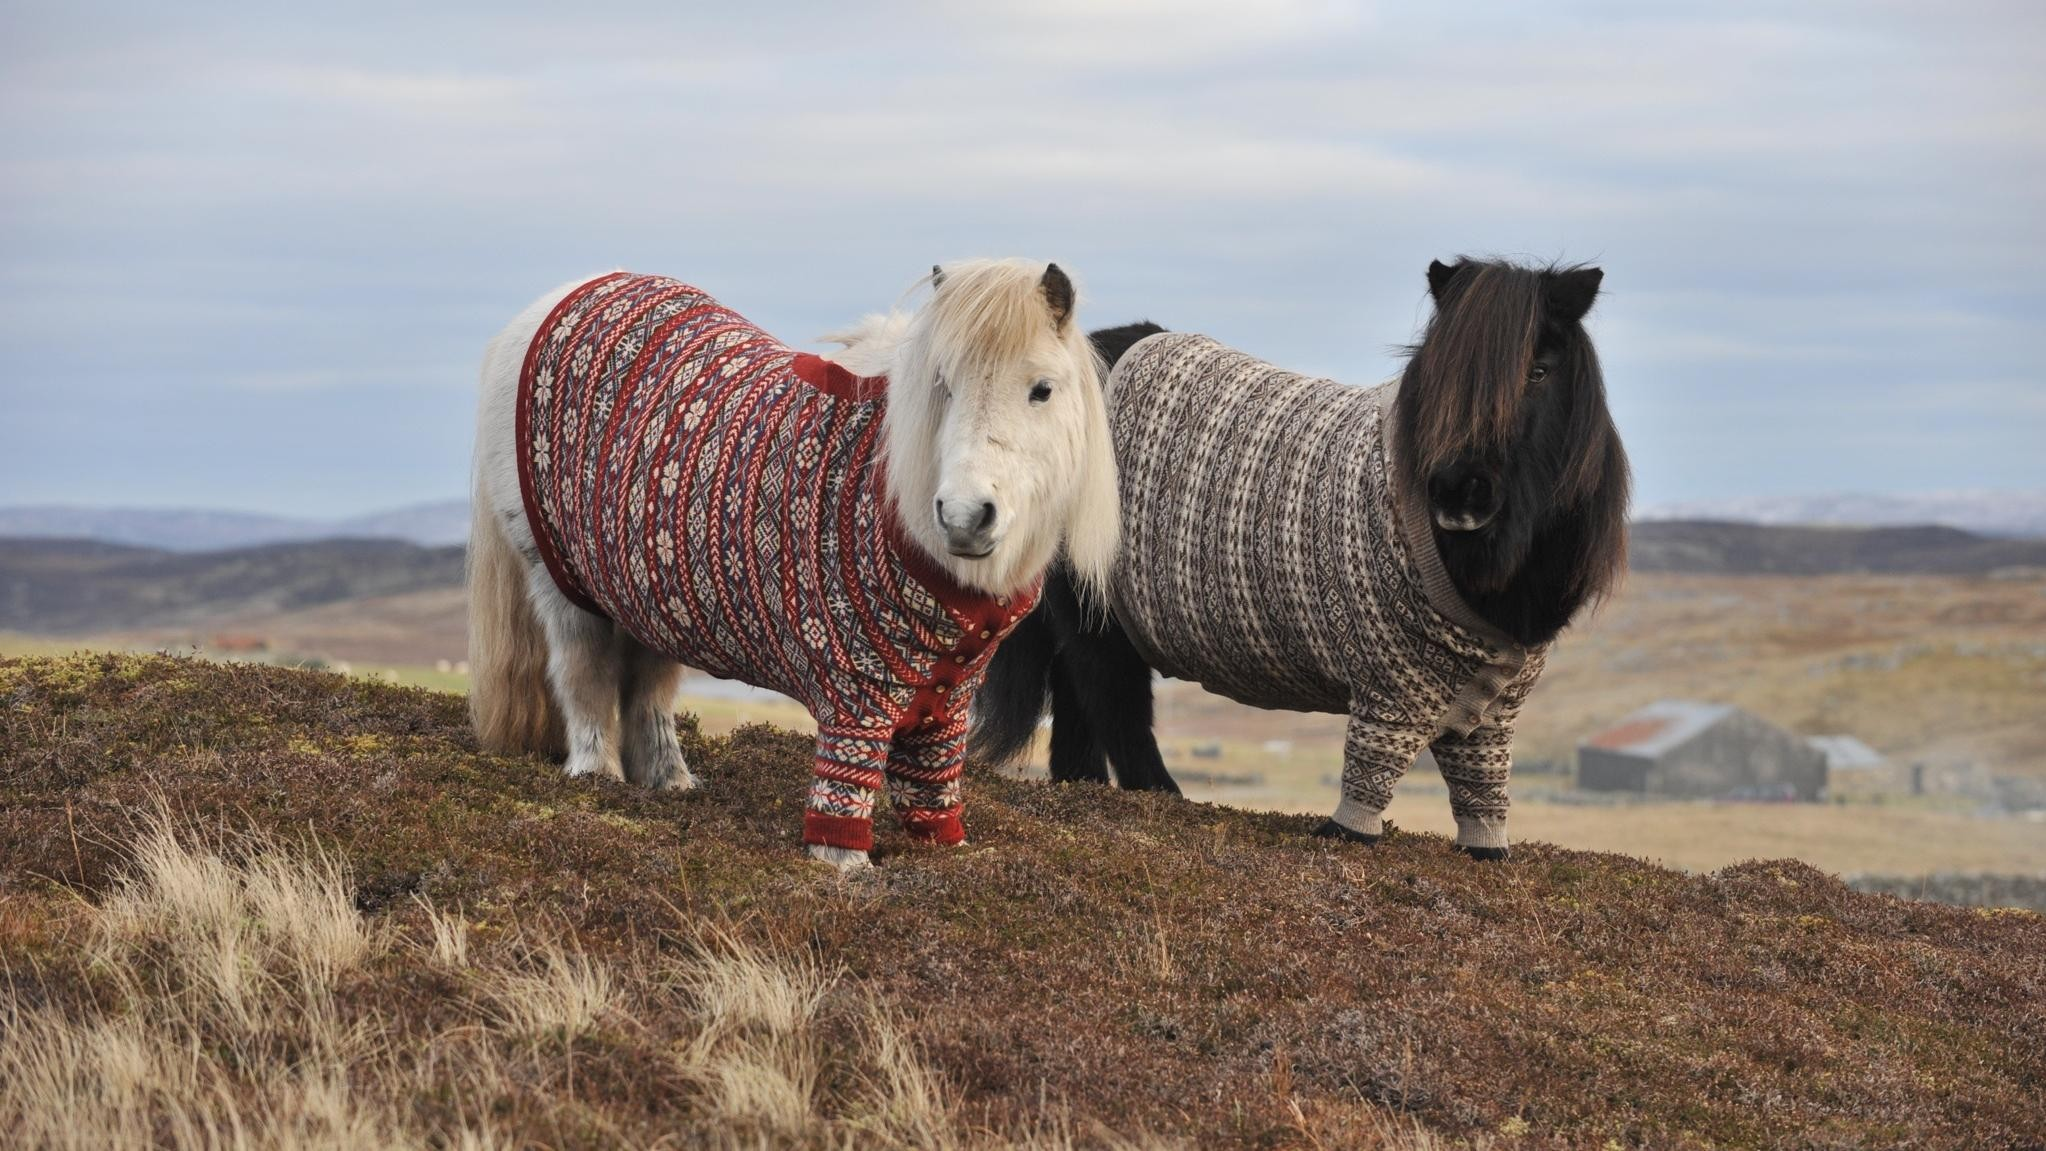 Scottish Ponies Wearing Cardigans? Scottish Ponies Wearing Cardigans.